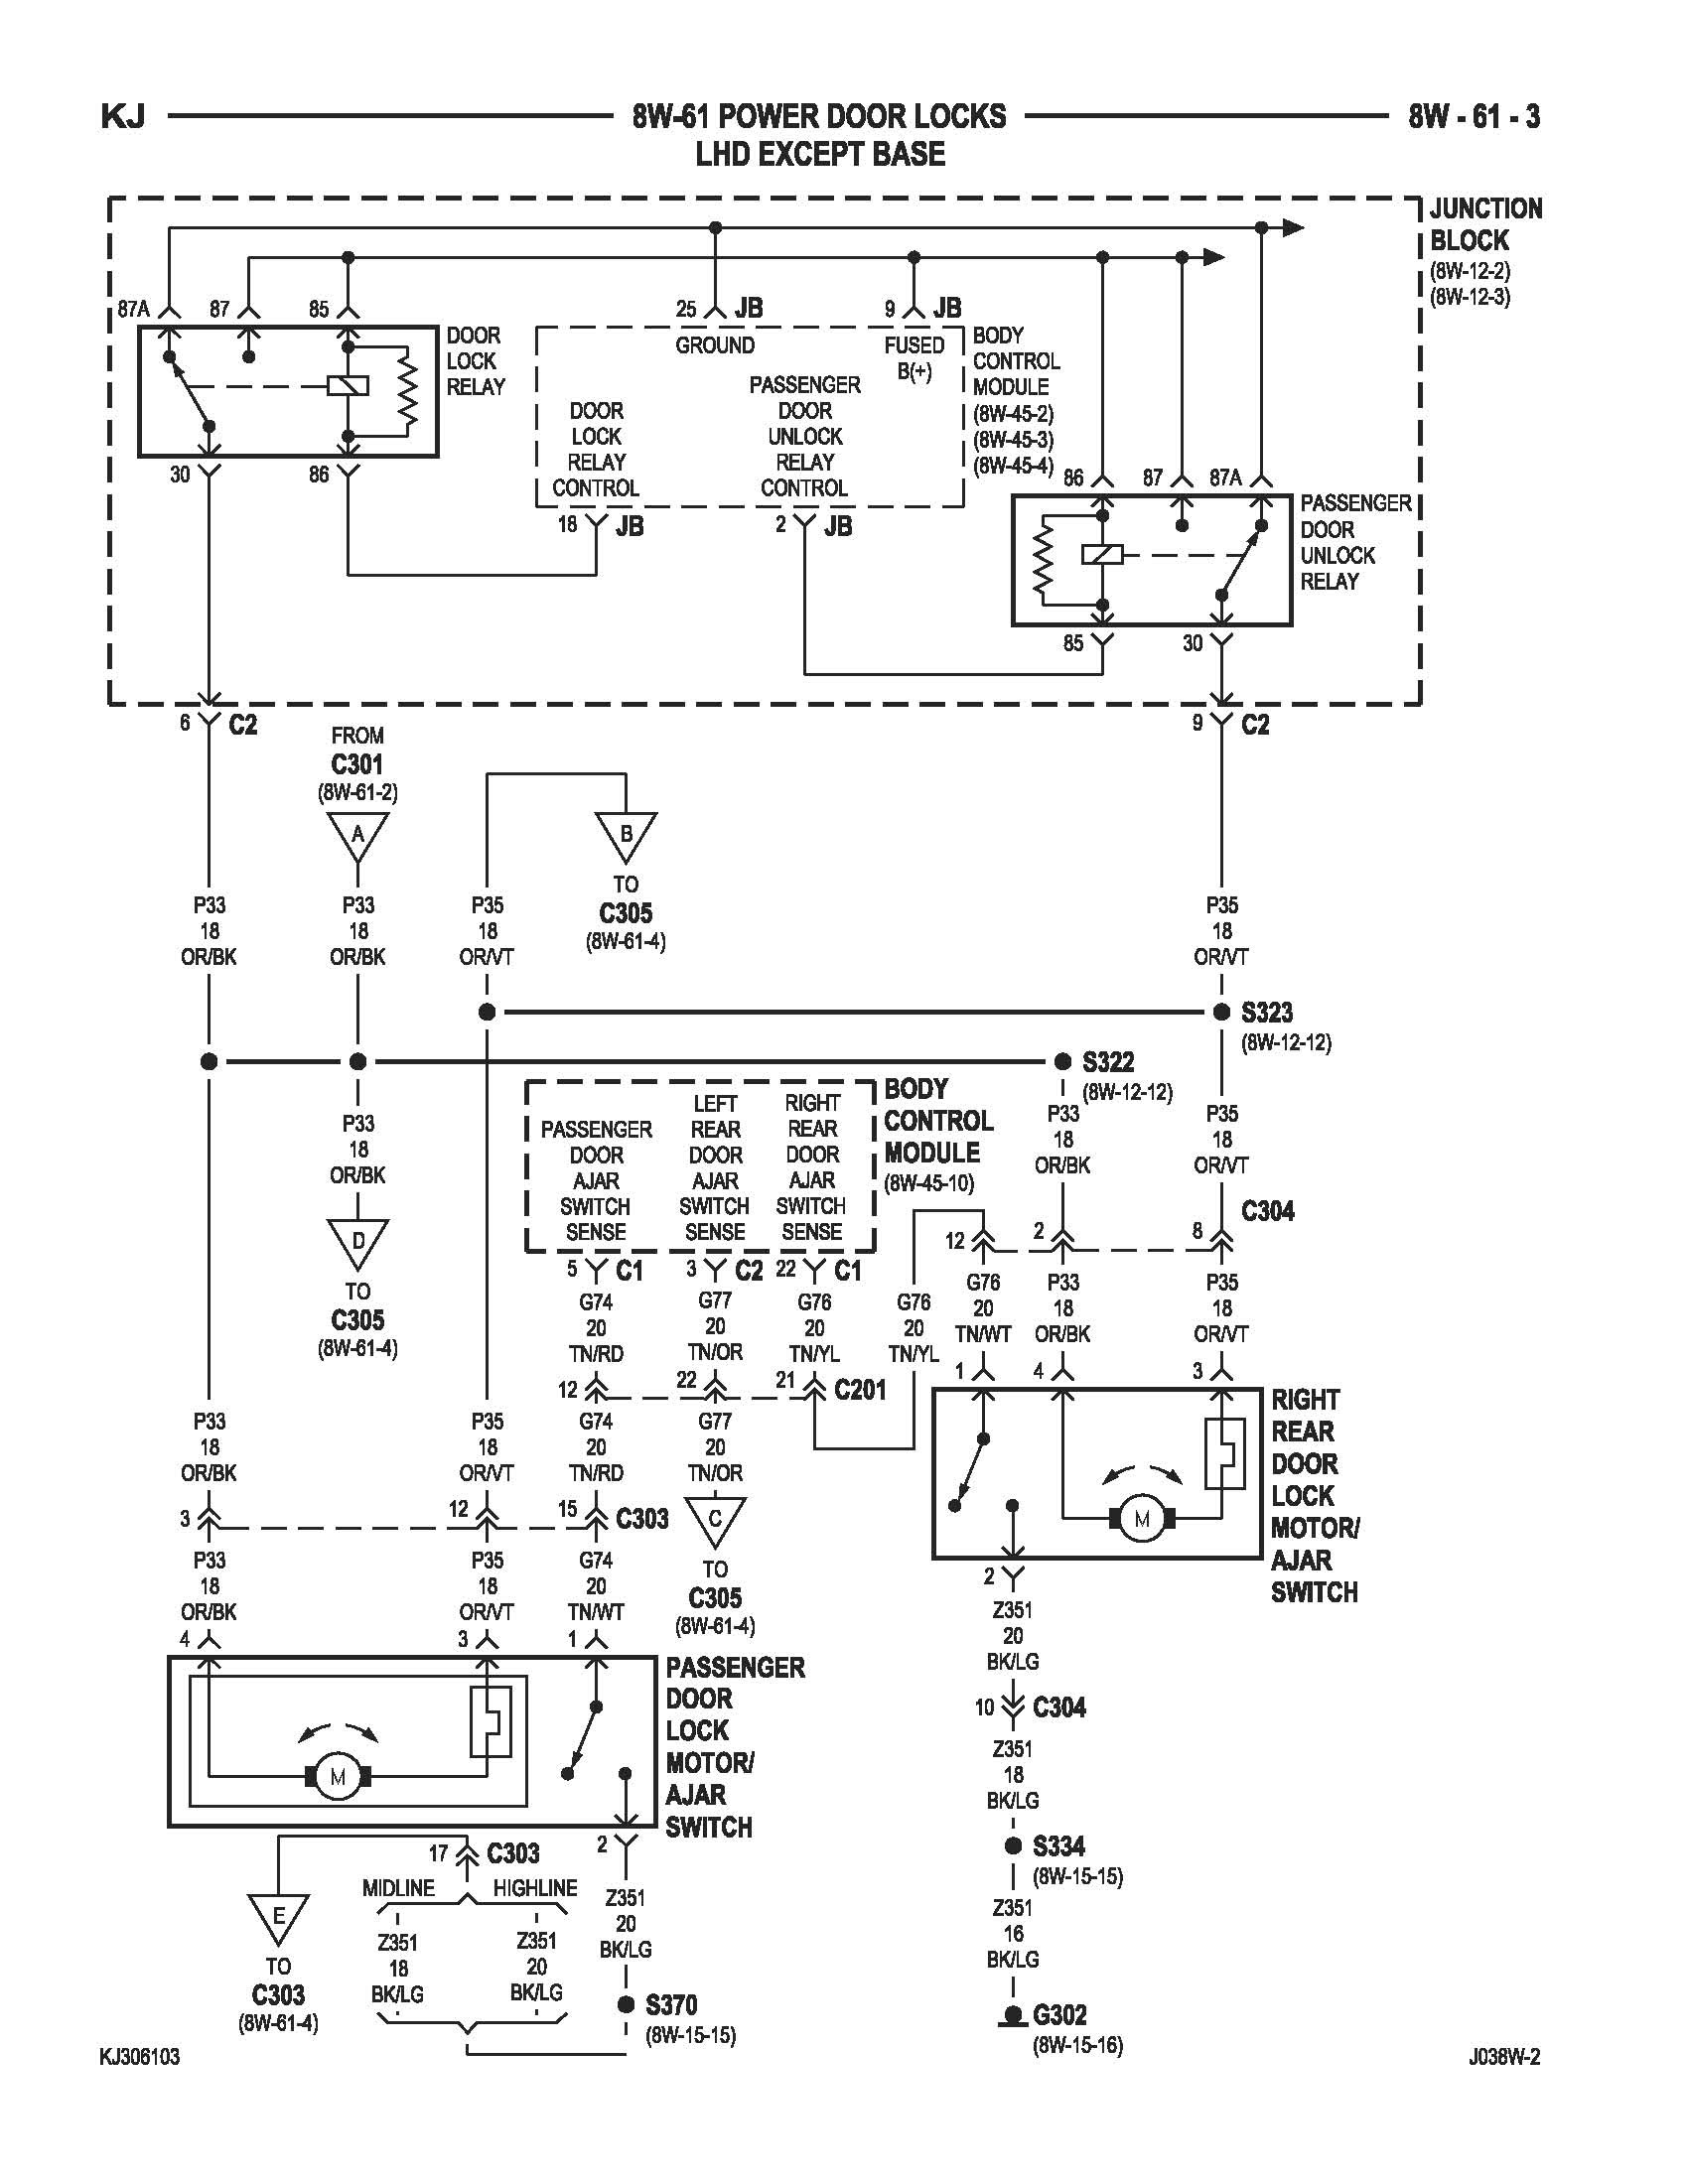 Cooling Fan Wiring Diagram 2002 Jeep Liberty 2002 Jeep Liberty Door Lock Wiring Diagram Full Hd Version Of Cooling Fan Wiring Diagram 2002 Jeep Liberty